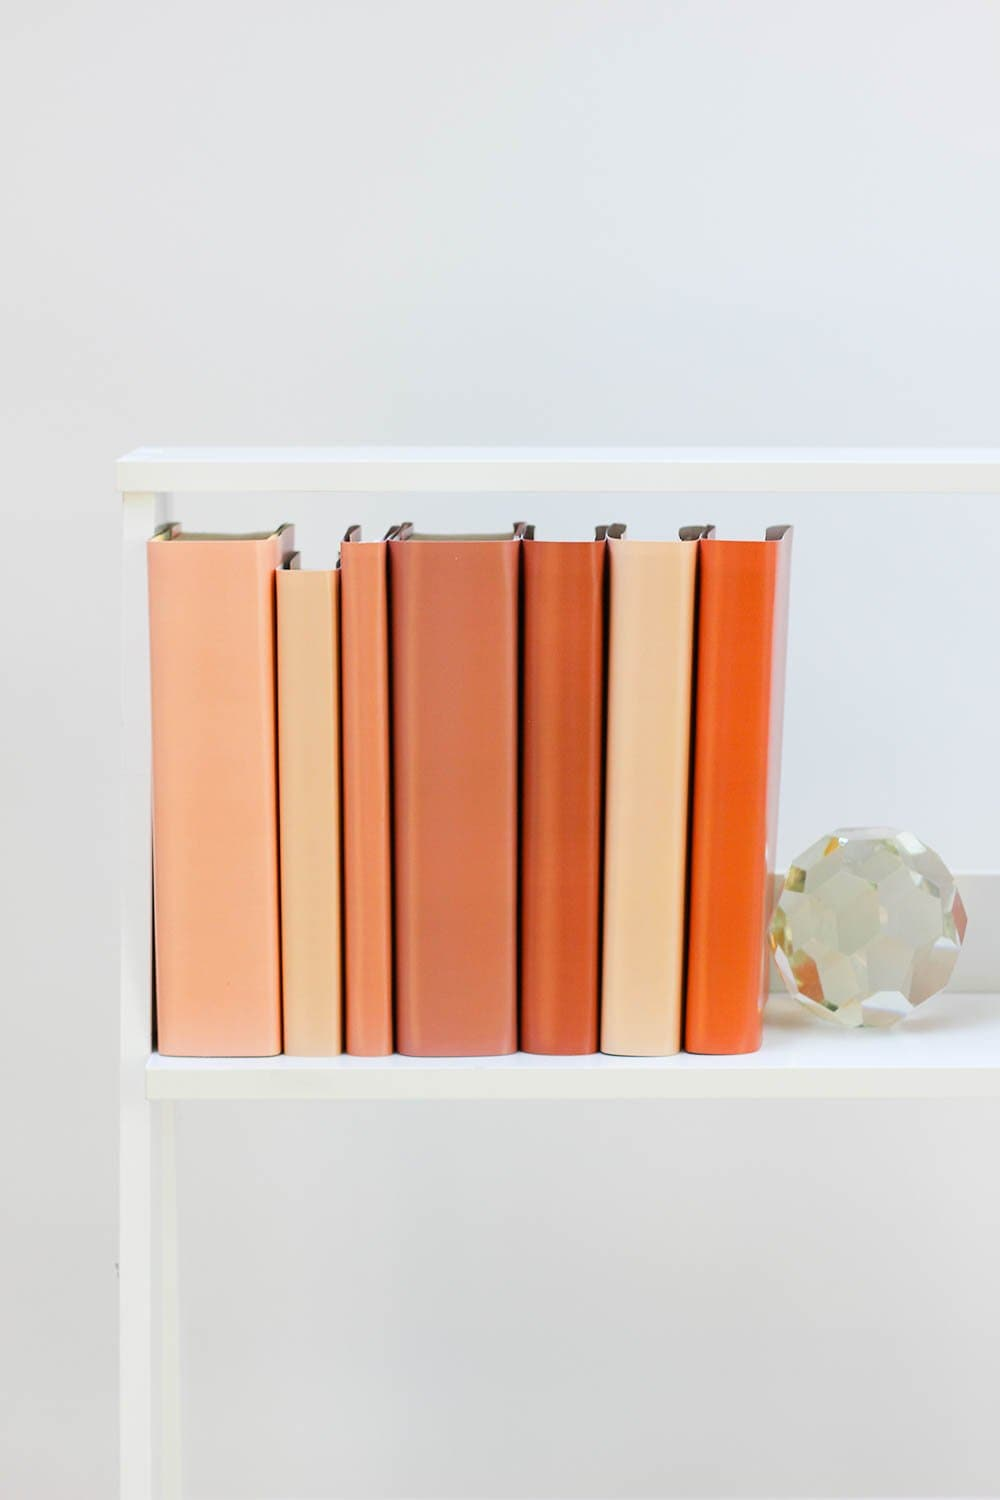 Set of styled nude books made with nude book covers